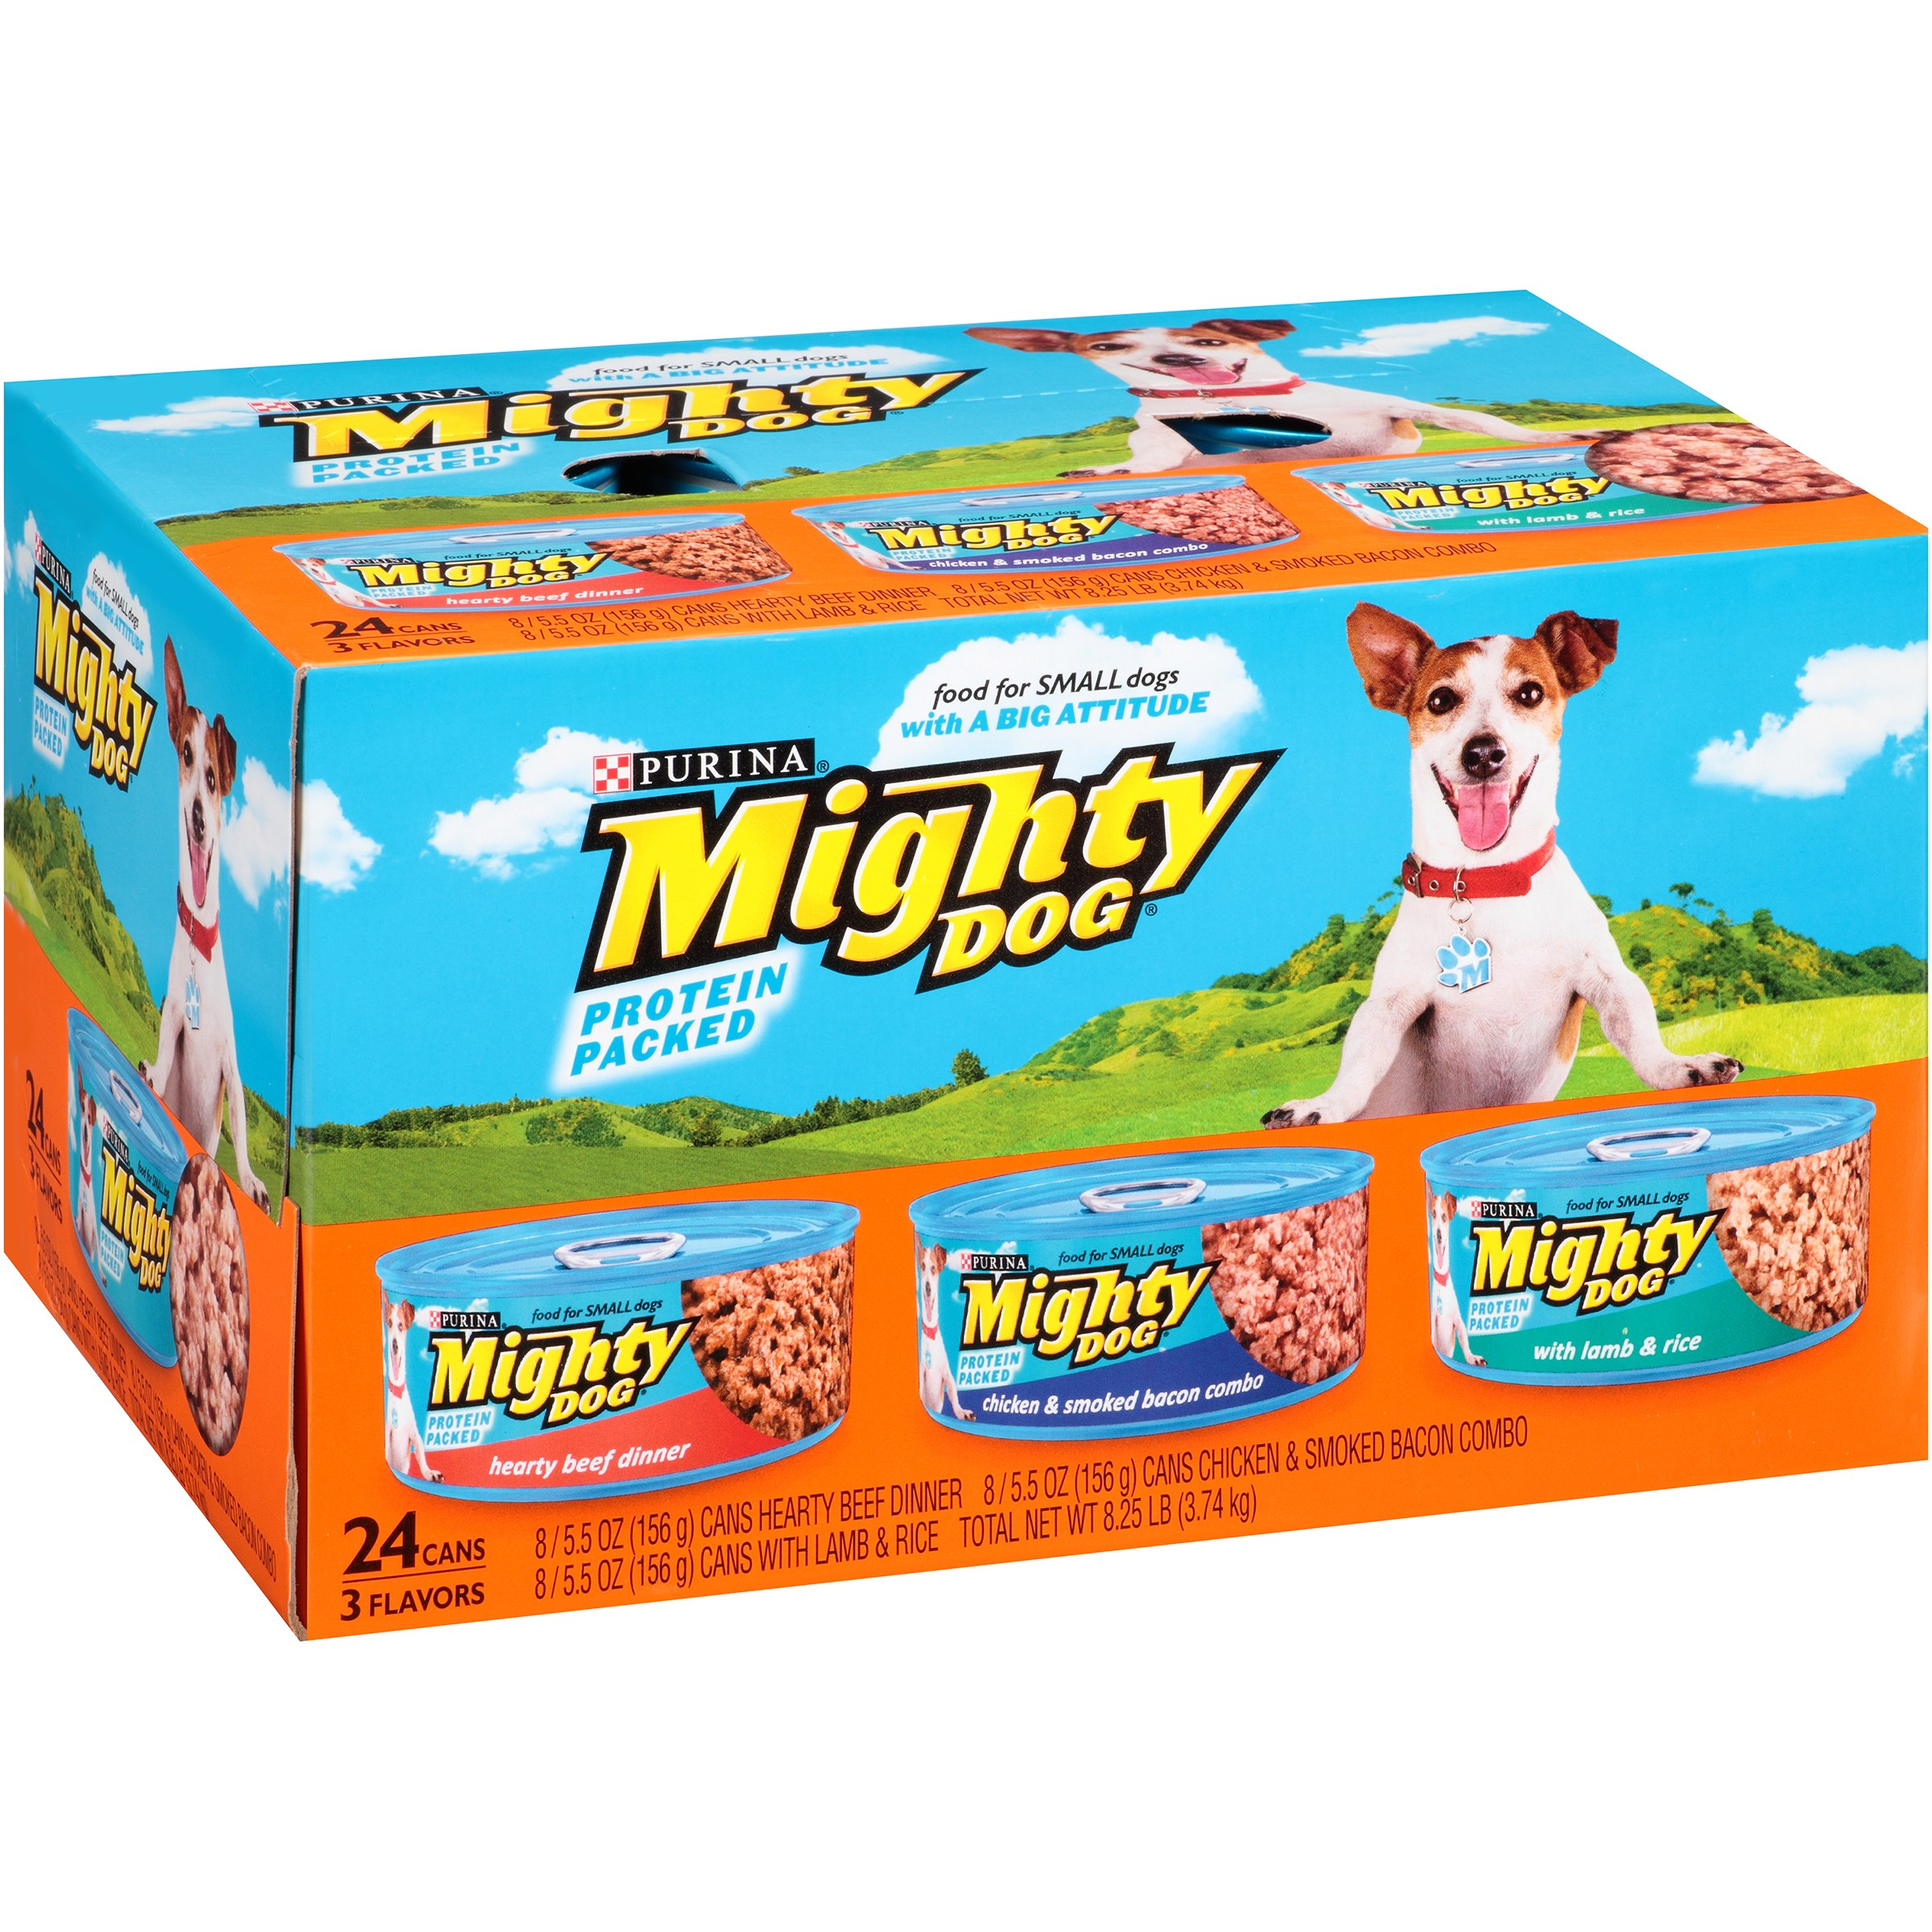 Purina Mighty Dog Hearty Beef Dinner/Chicken & Smoked Bacon Combo/With Lamb & Rice Dog Food 24-5.5 oz. Cans